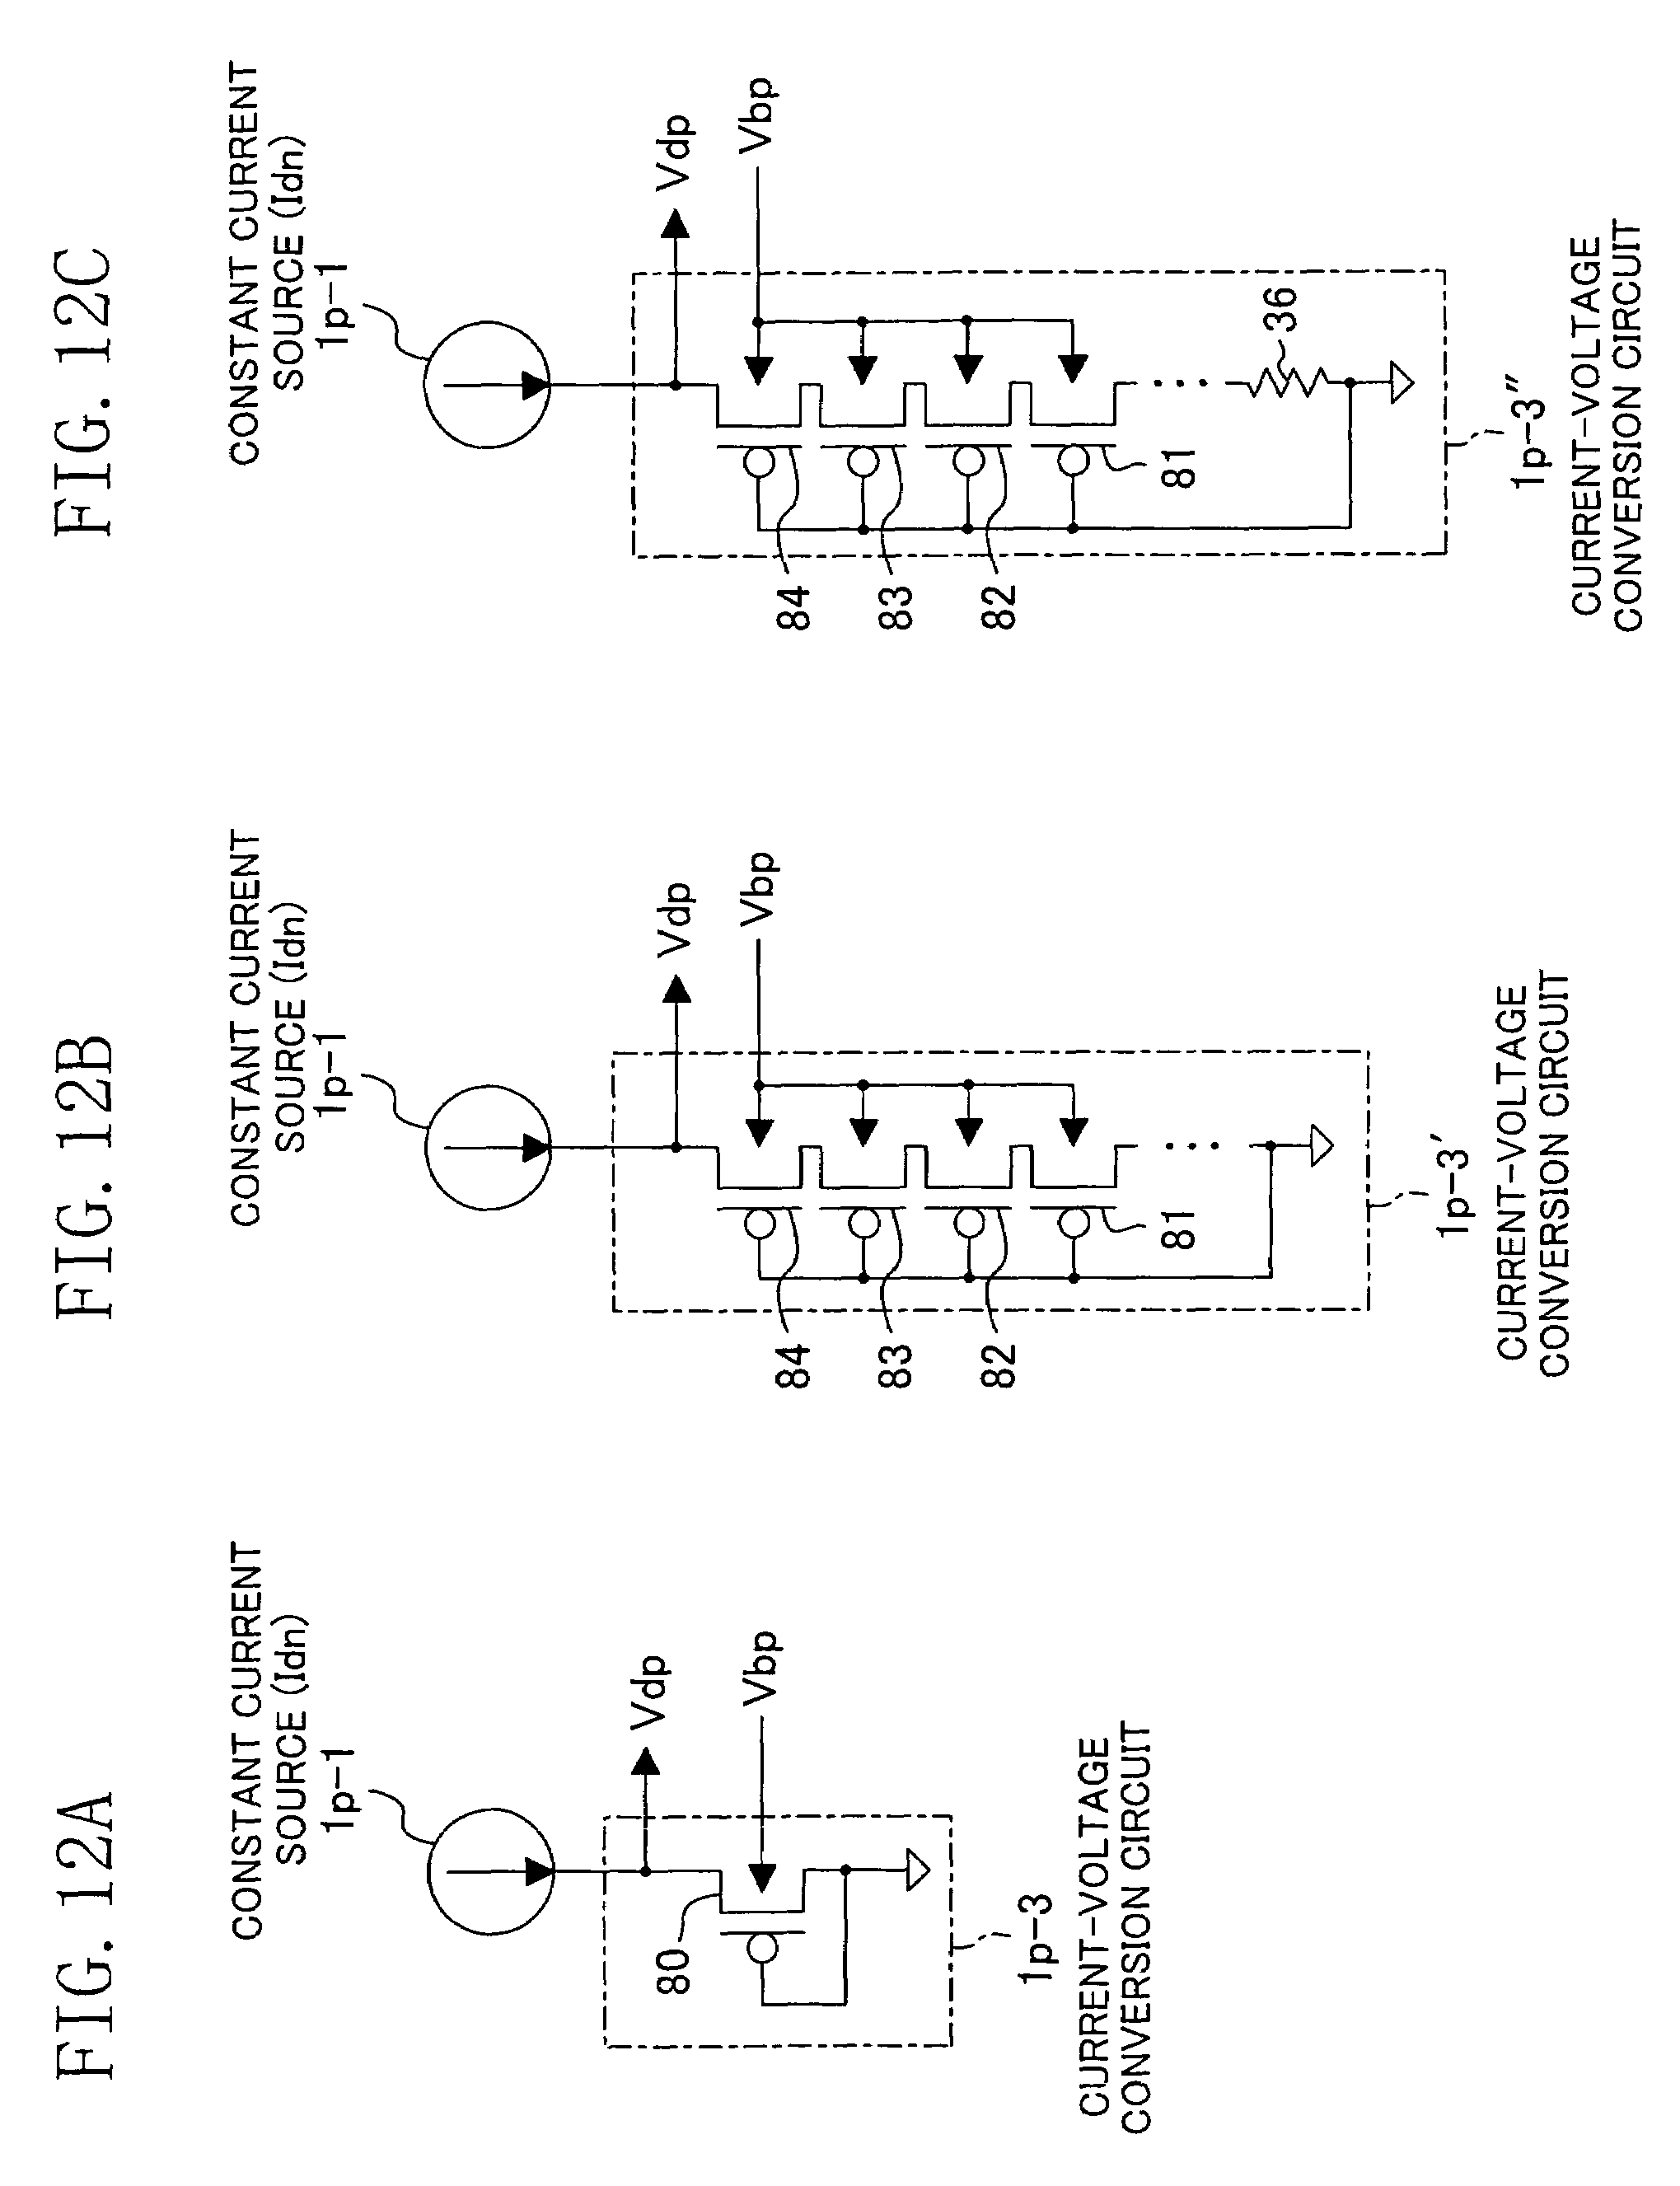 Patent Us7498865 Semiconductor Integrated Circuit With Reduced Constant Current Source Drawing